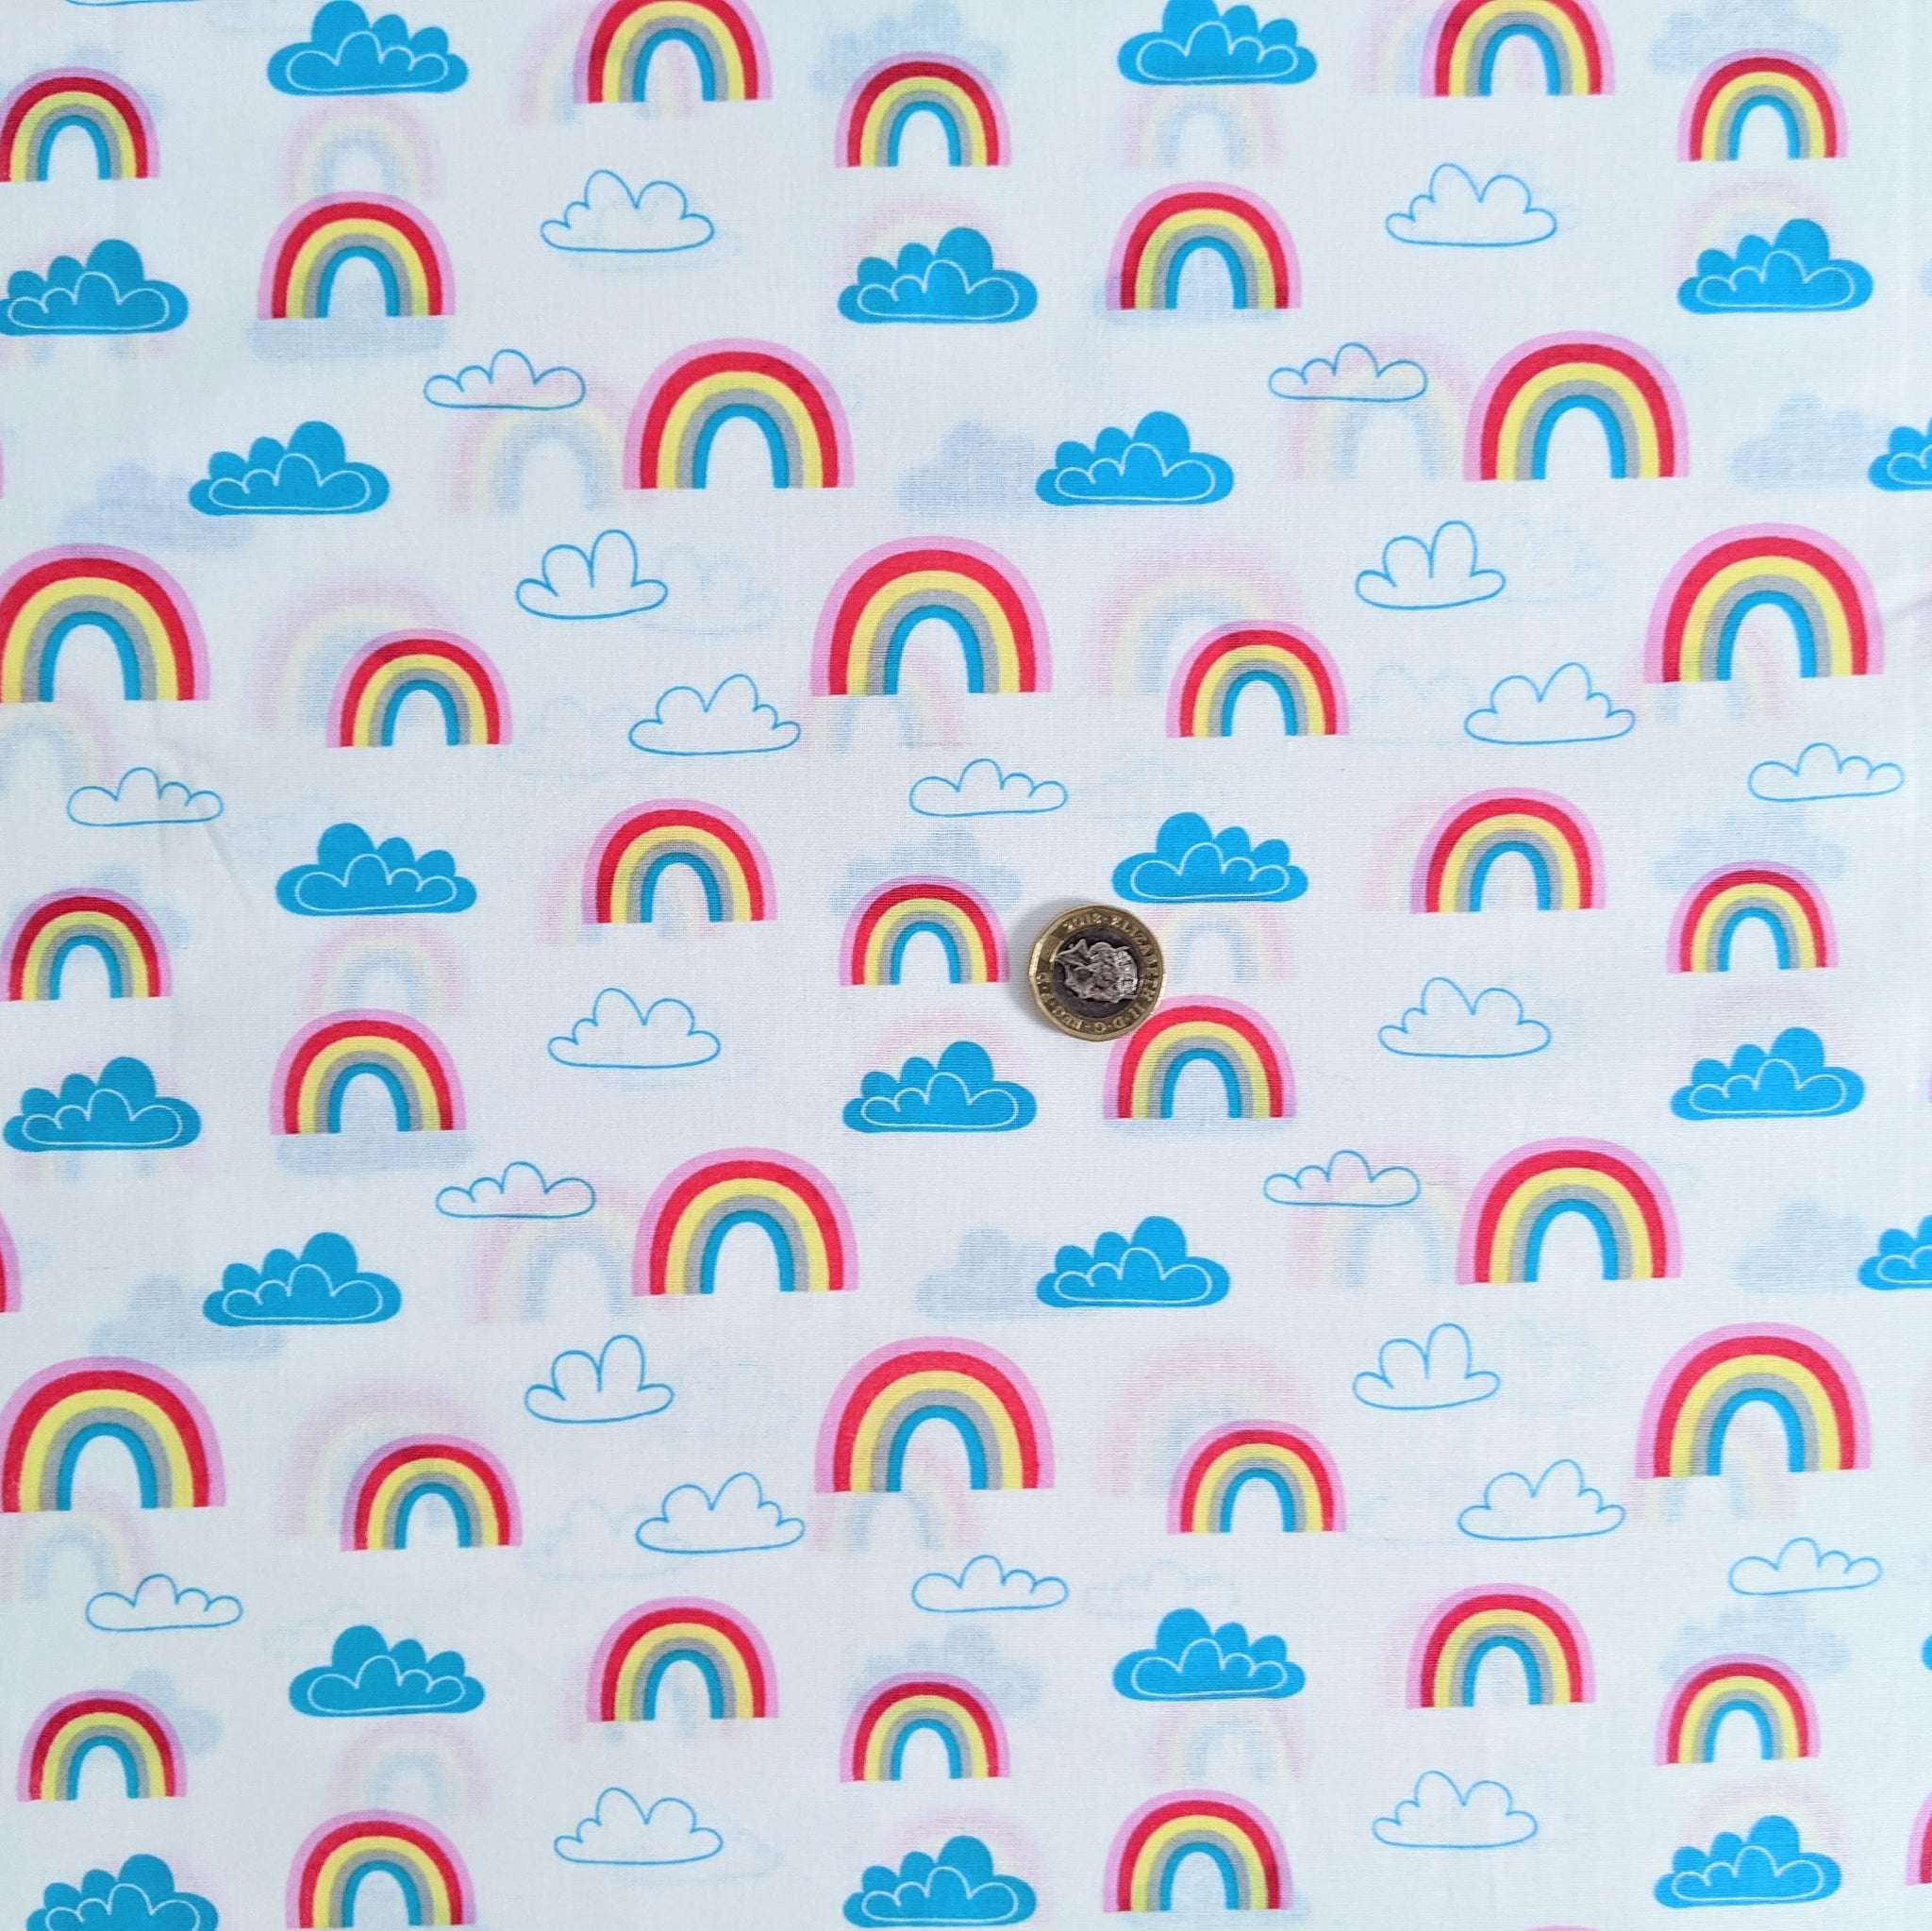 Rainbows and clouds - 100% cotton